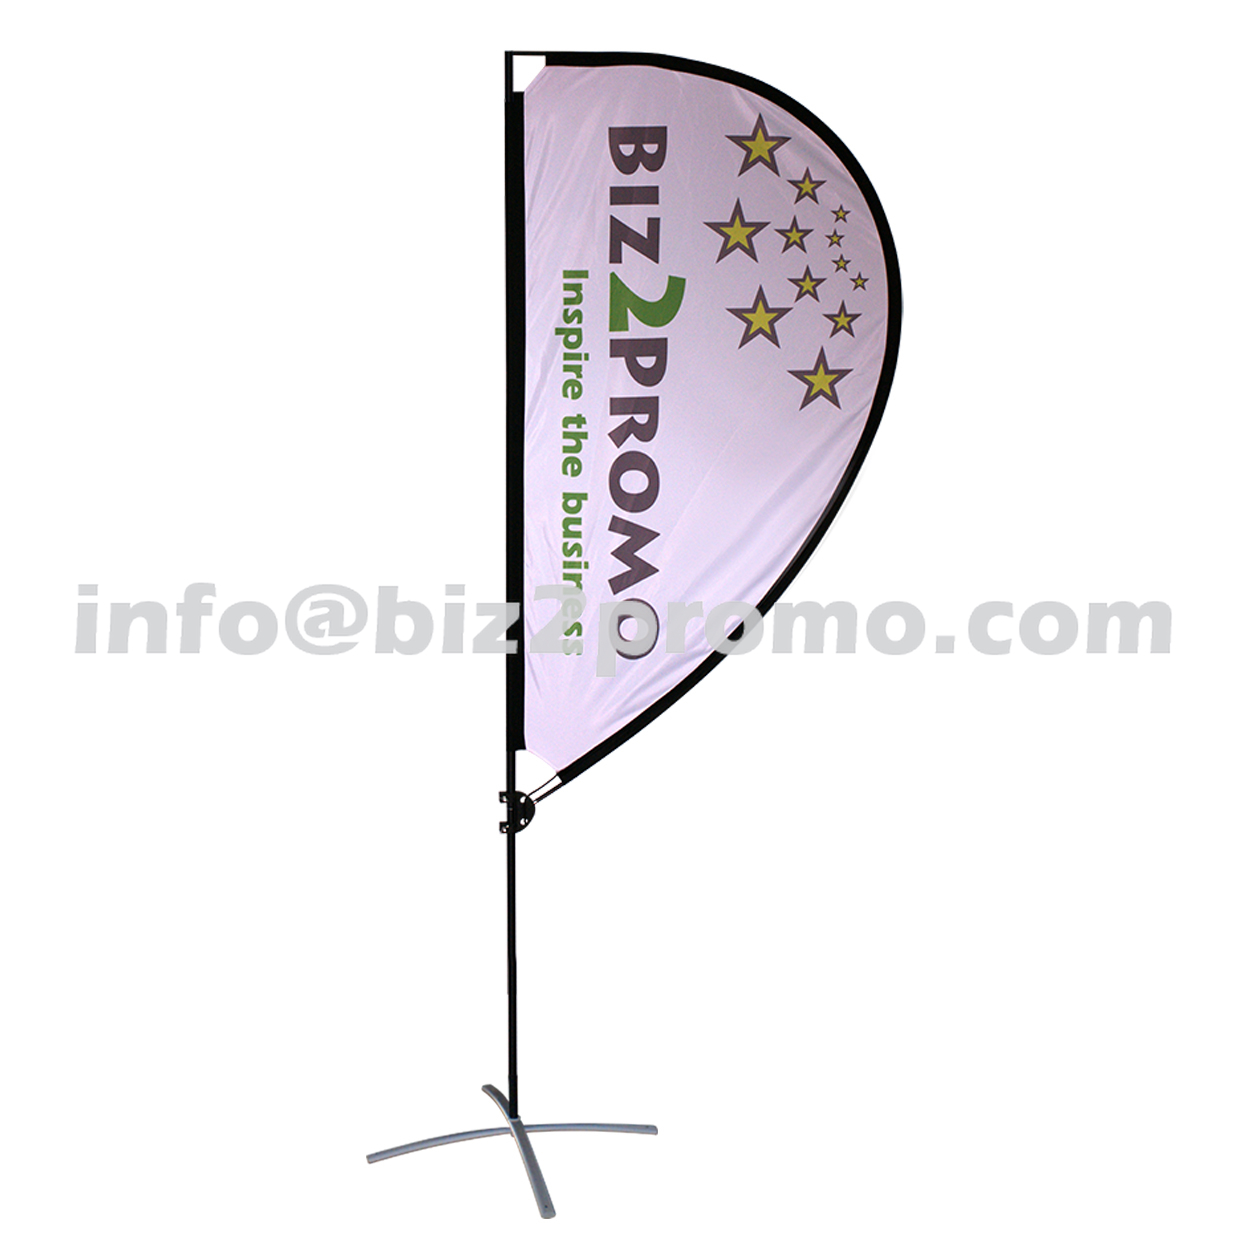 http://www.biz2promo.com/Upload/product/201352120411178.jpg